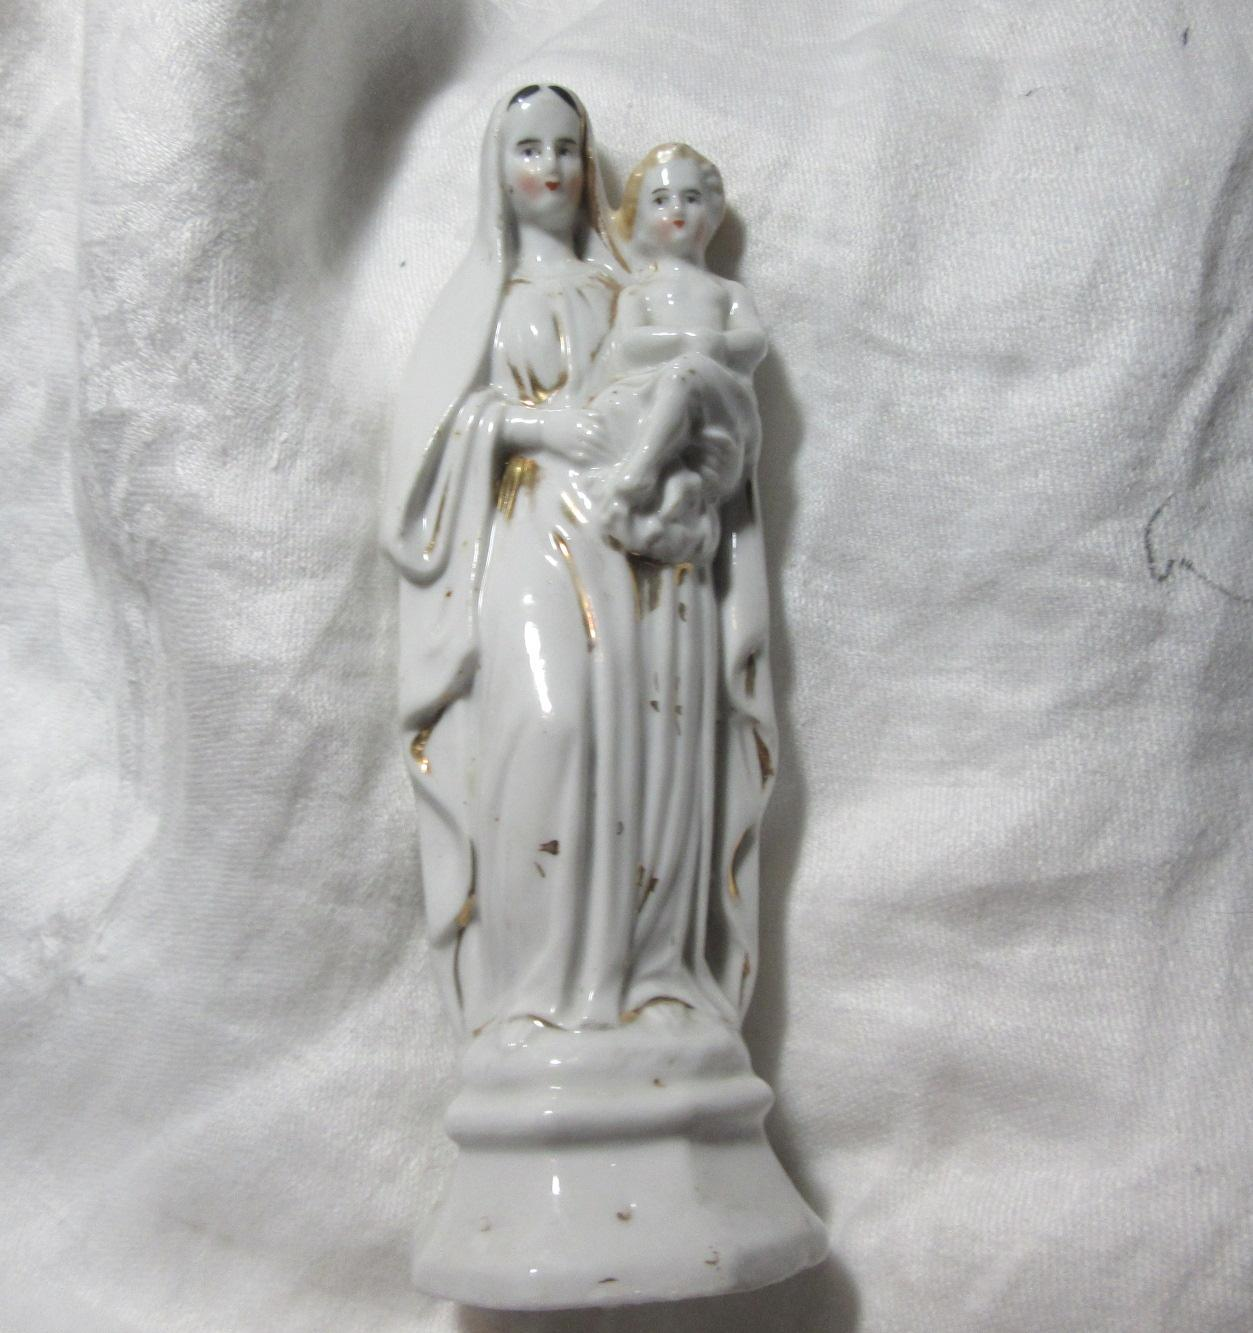 Virgin Mary Our Lady & Infant Jesus Old Figurine Statue